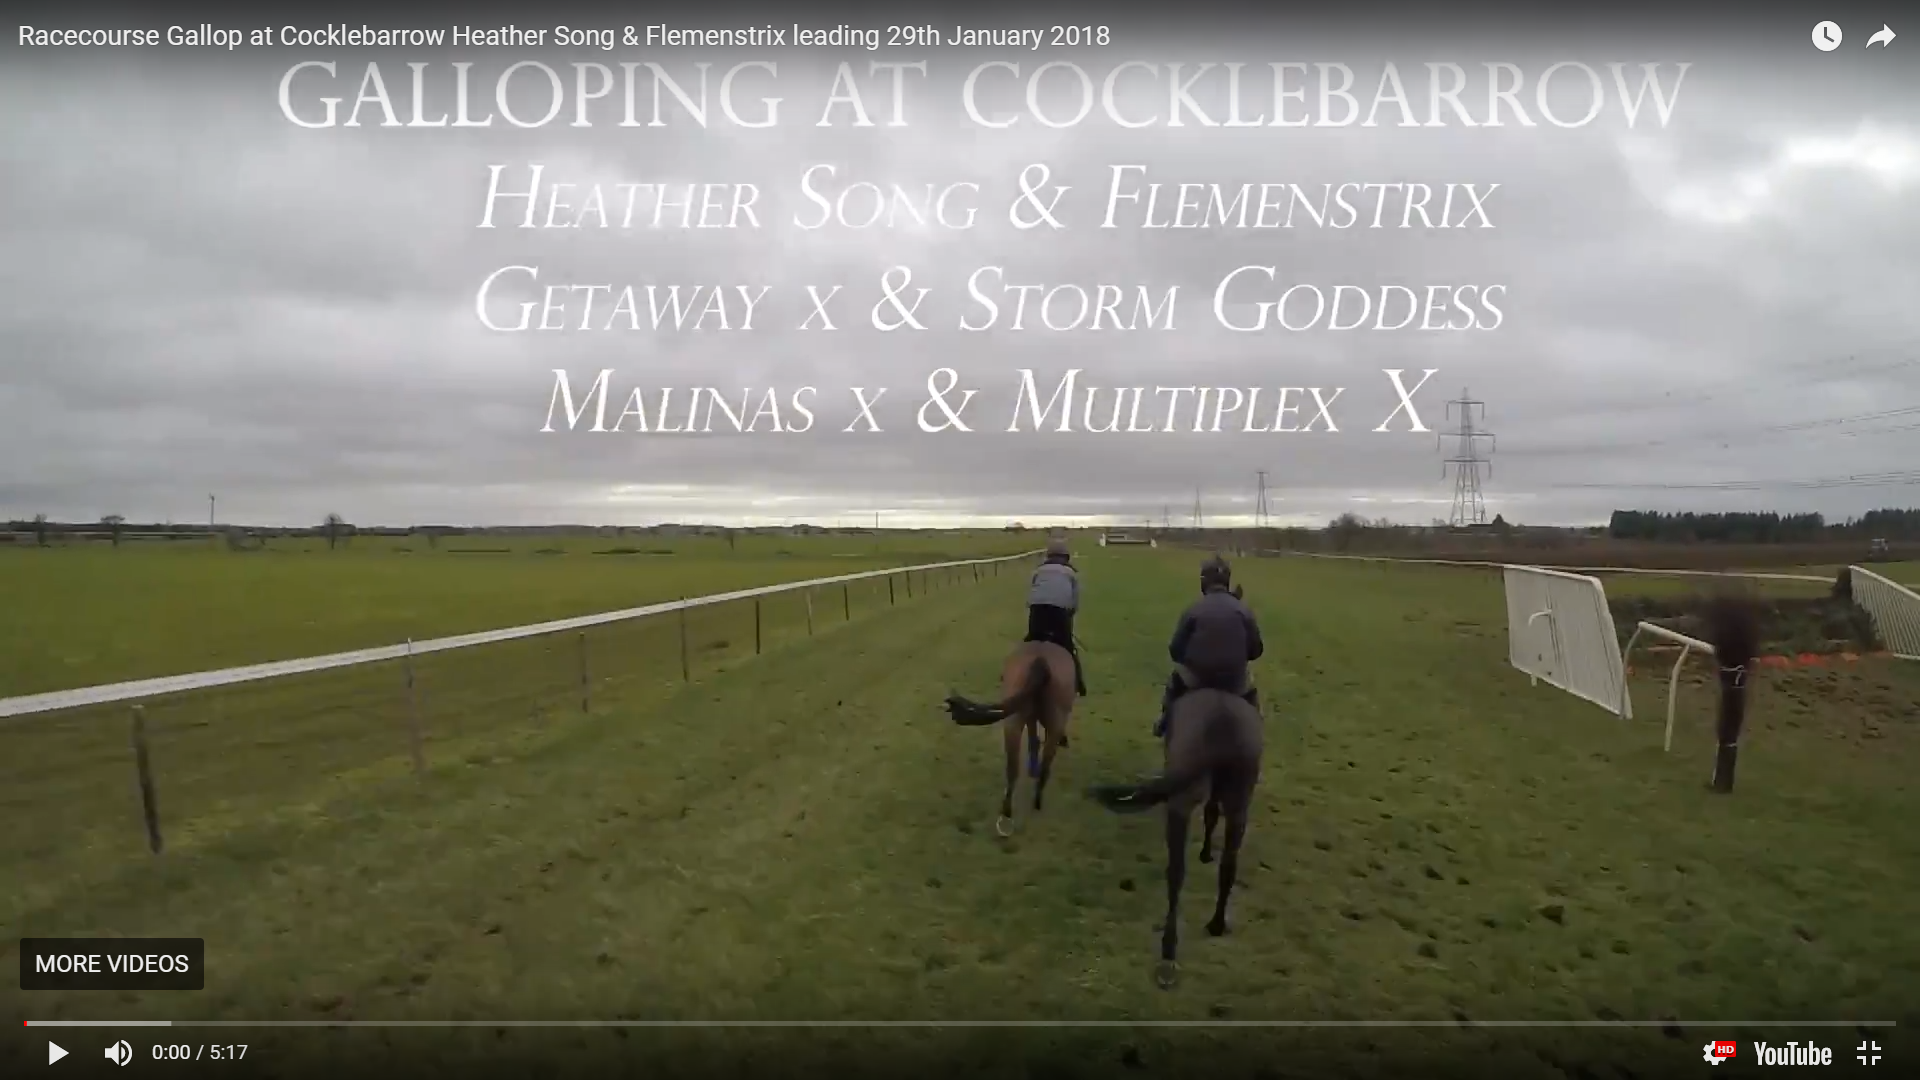 Racecourse Gallop at Cocklebarrow Heather Song & Flemenstrix leading 29th January 2018